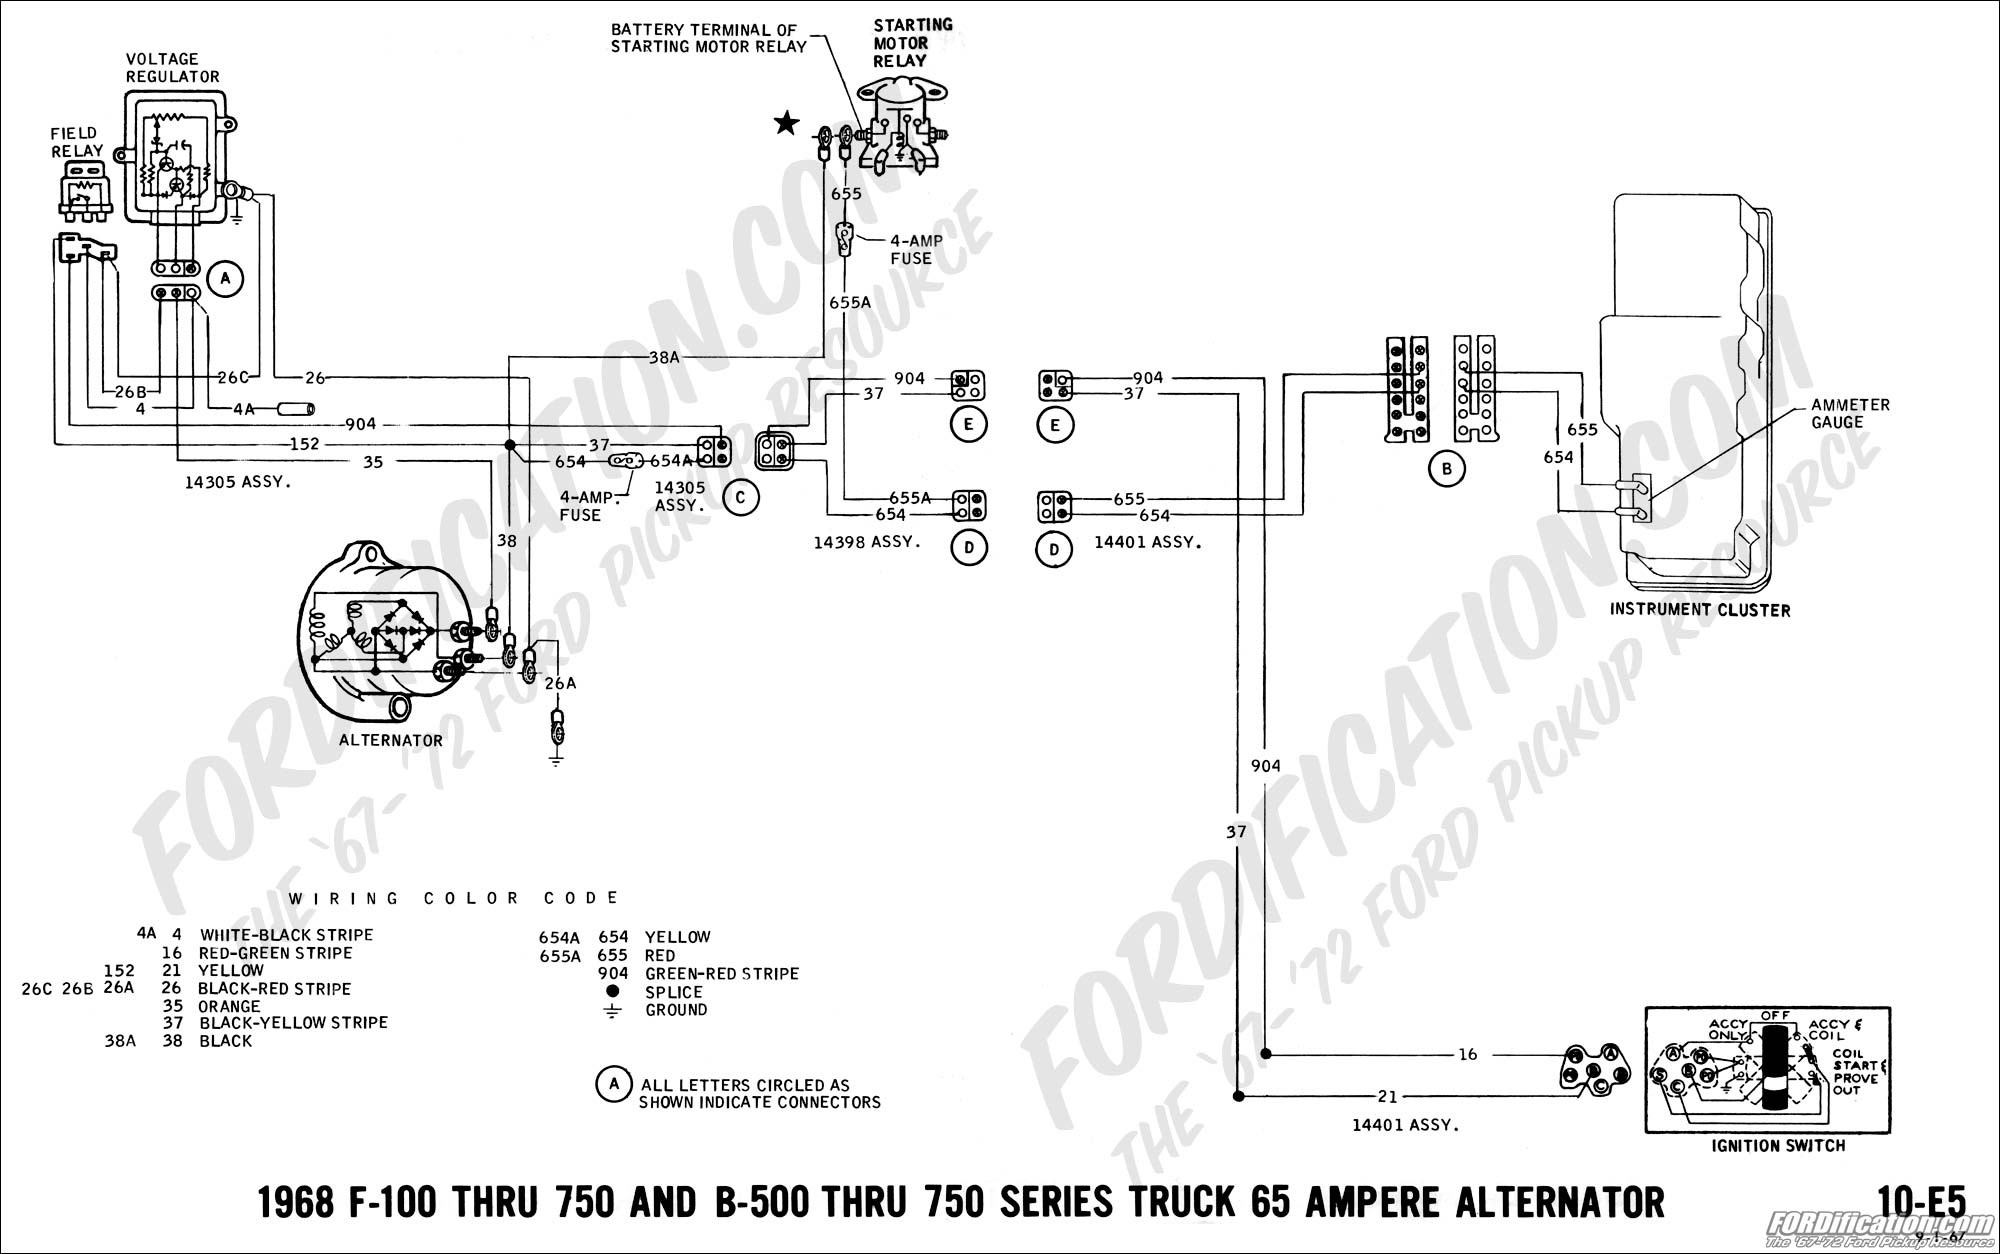 1968 Ford F100 Ignition Coil Wiring Diagram